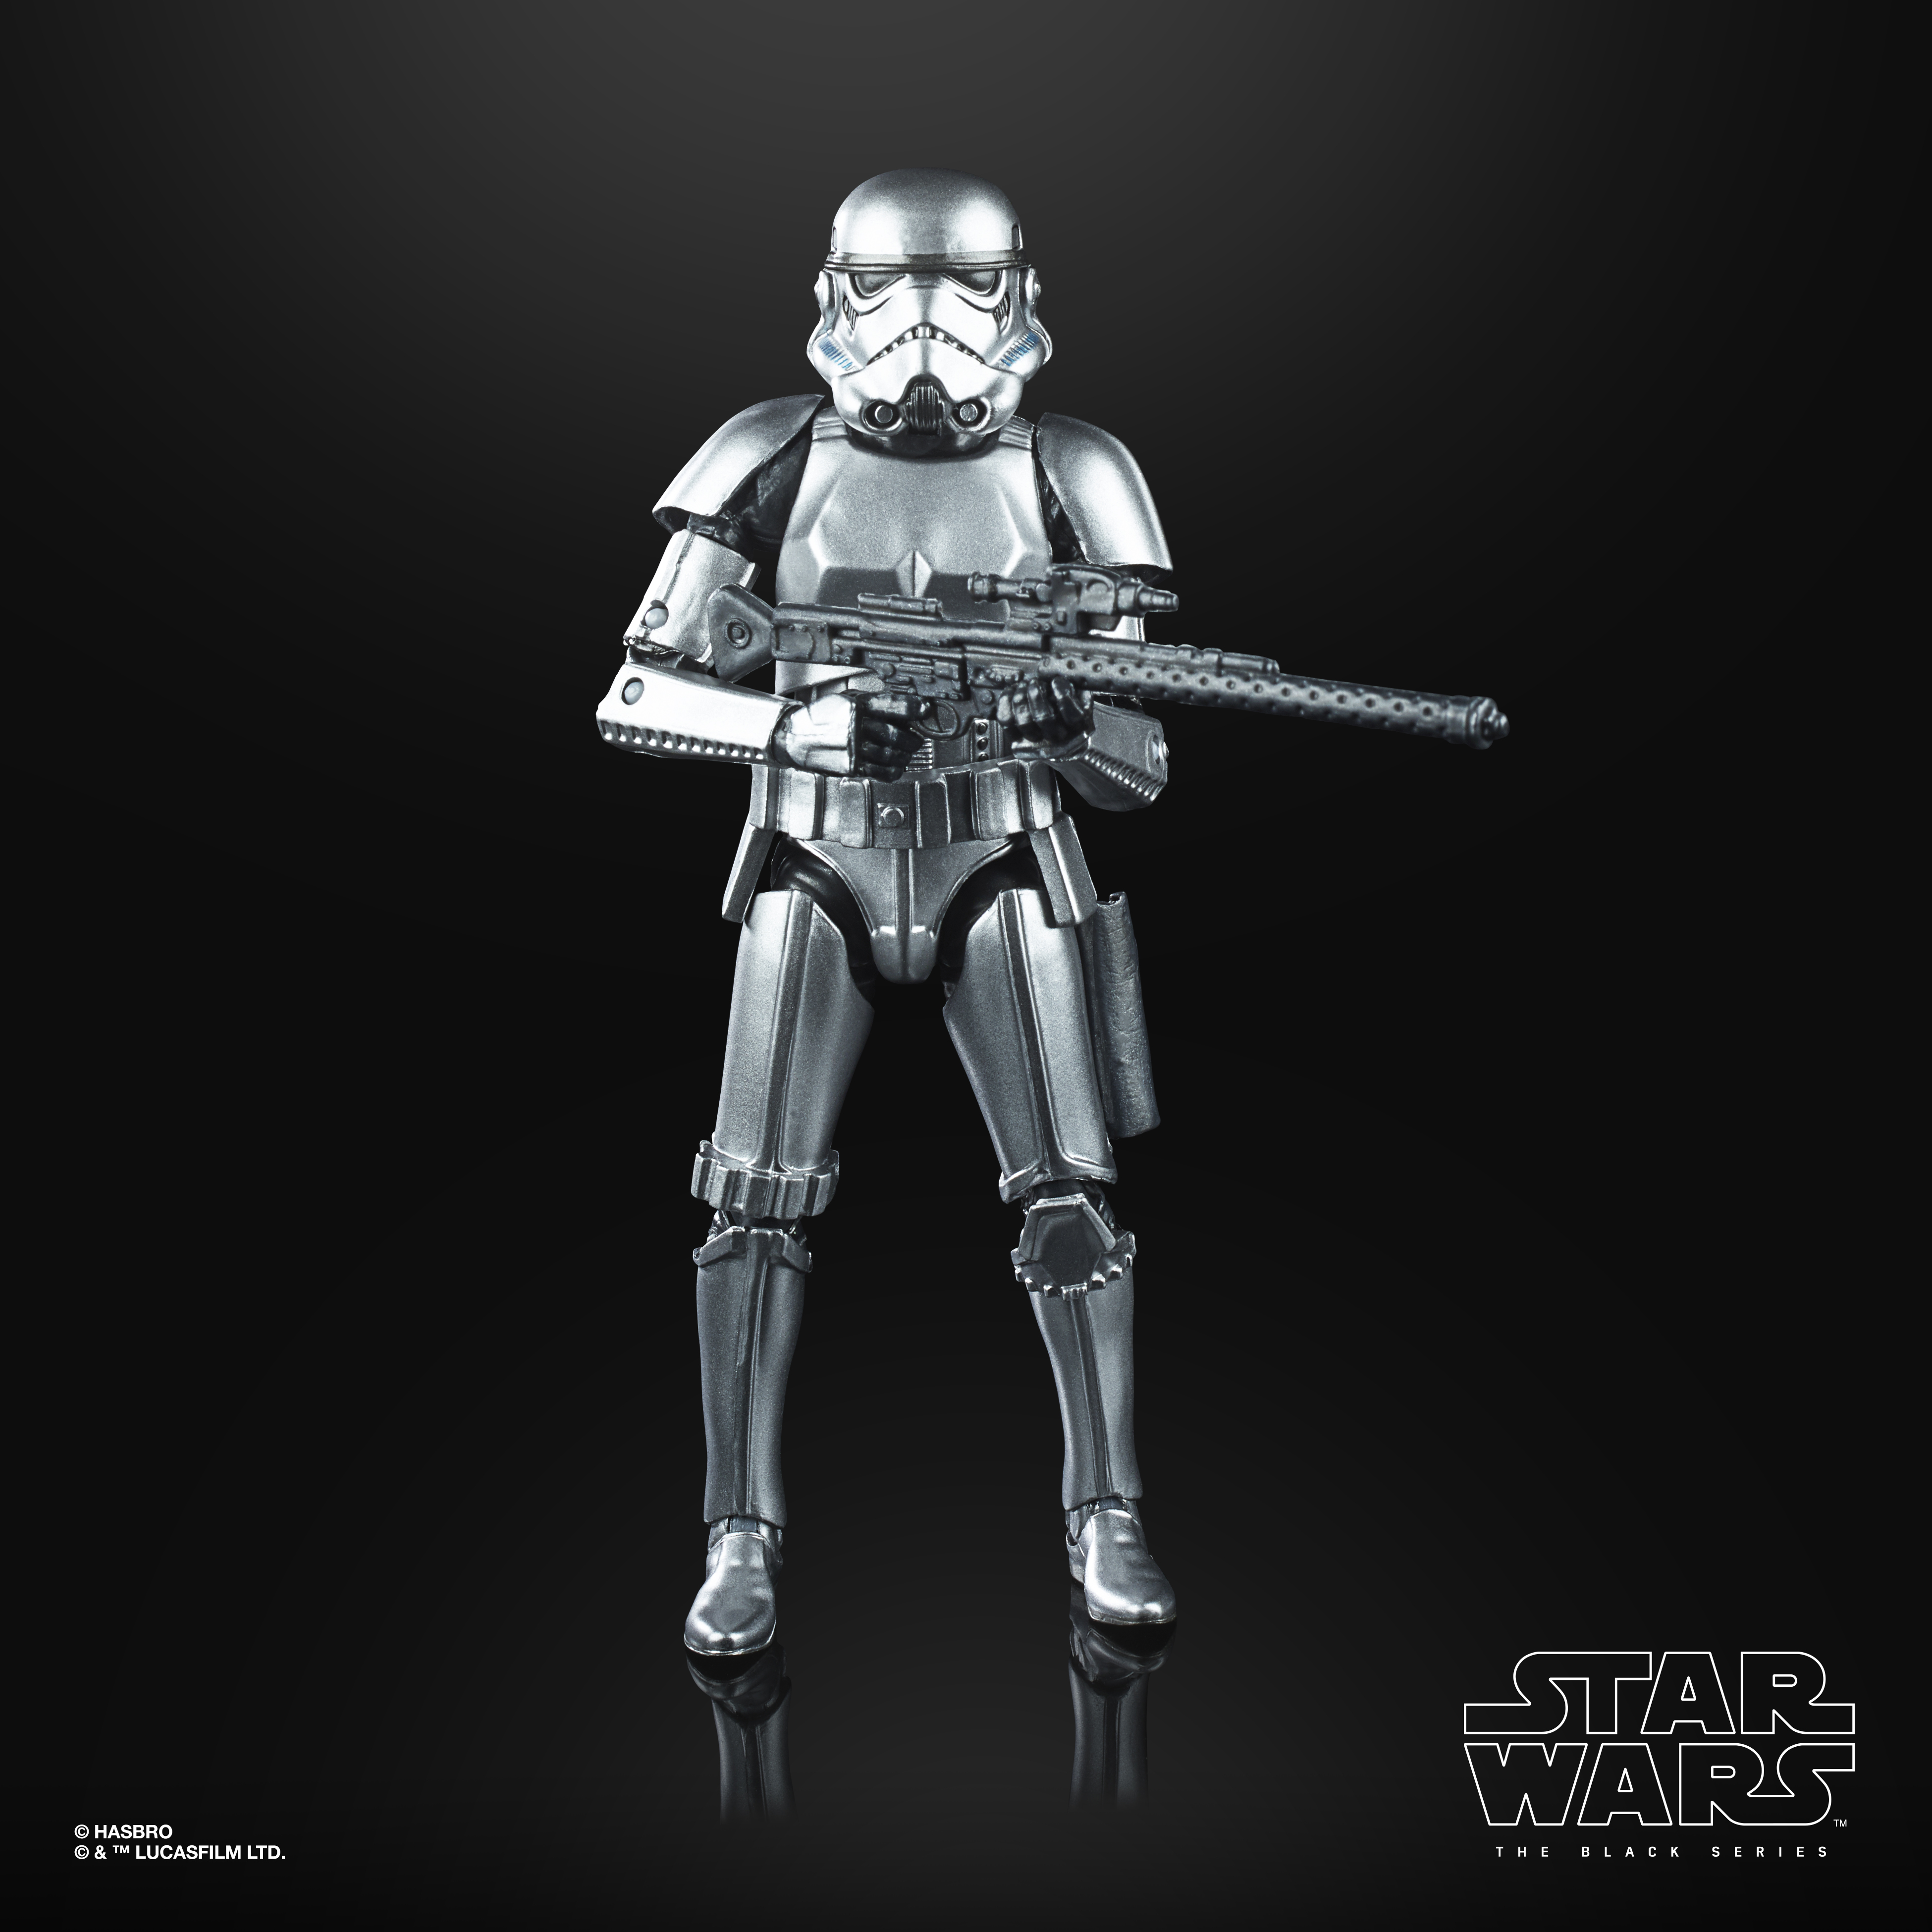 """Star Wars The Black Series Stormtrooper Carbonized Action Figure 6"""" Reihe E9923 5010993734474"""